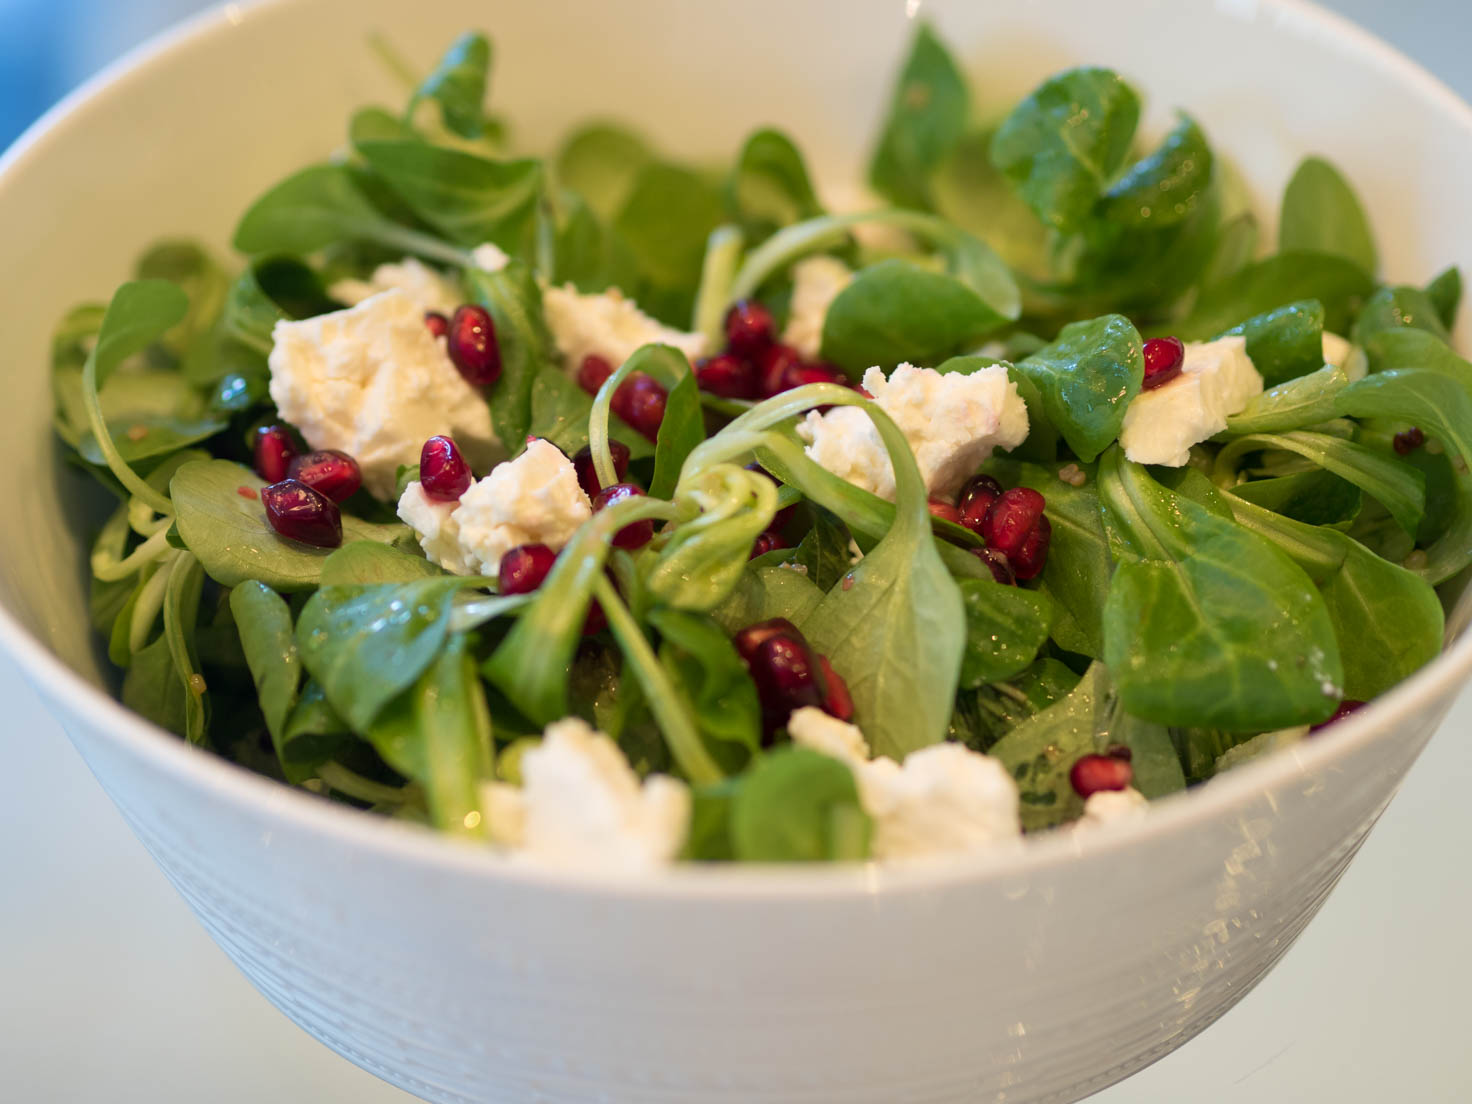 Lamb lettuce, quinoa, feta cheese and pomegranate seeds